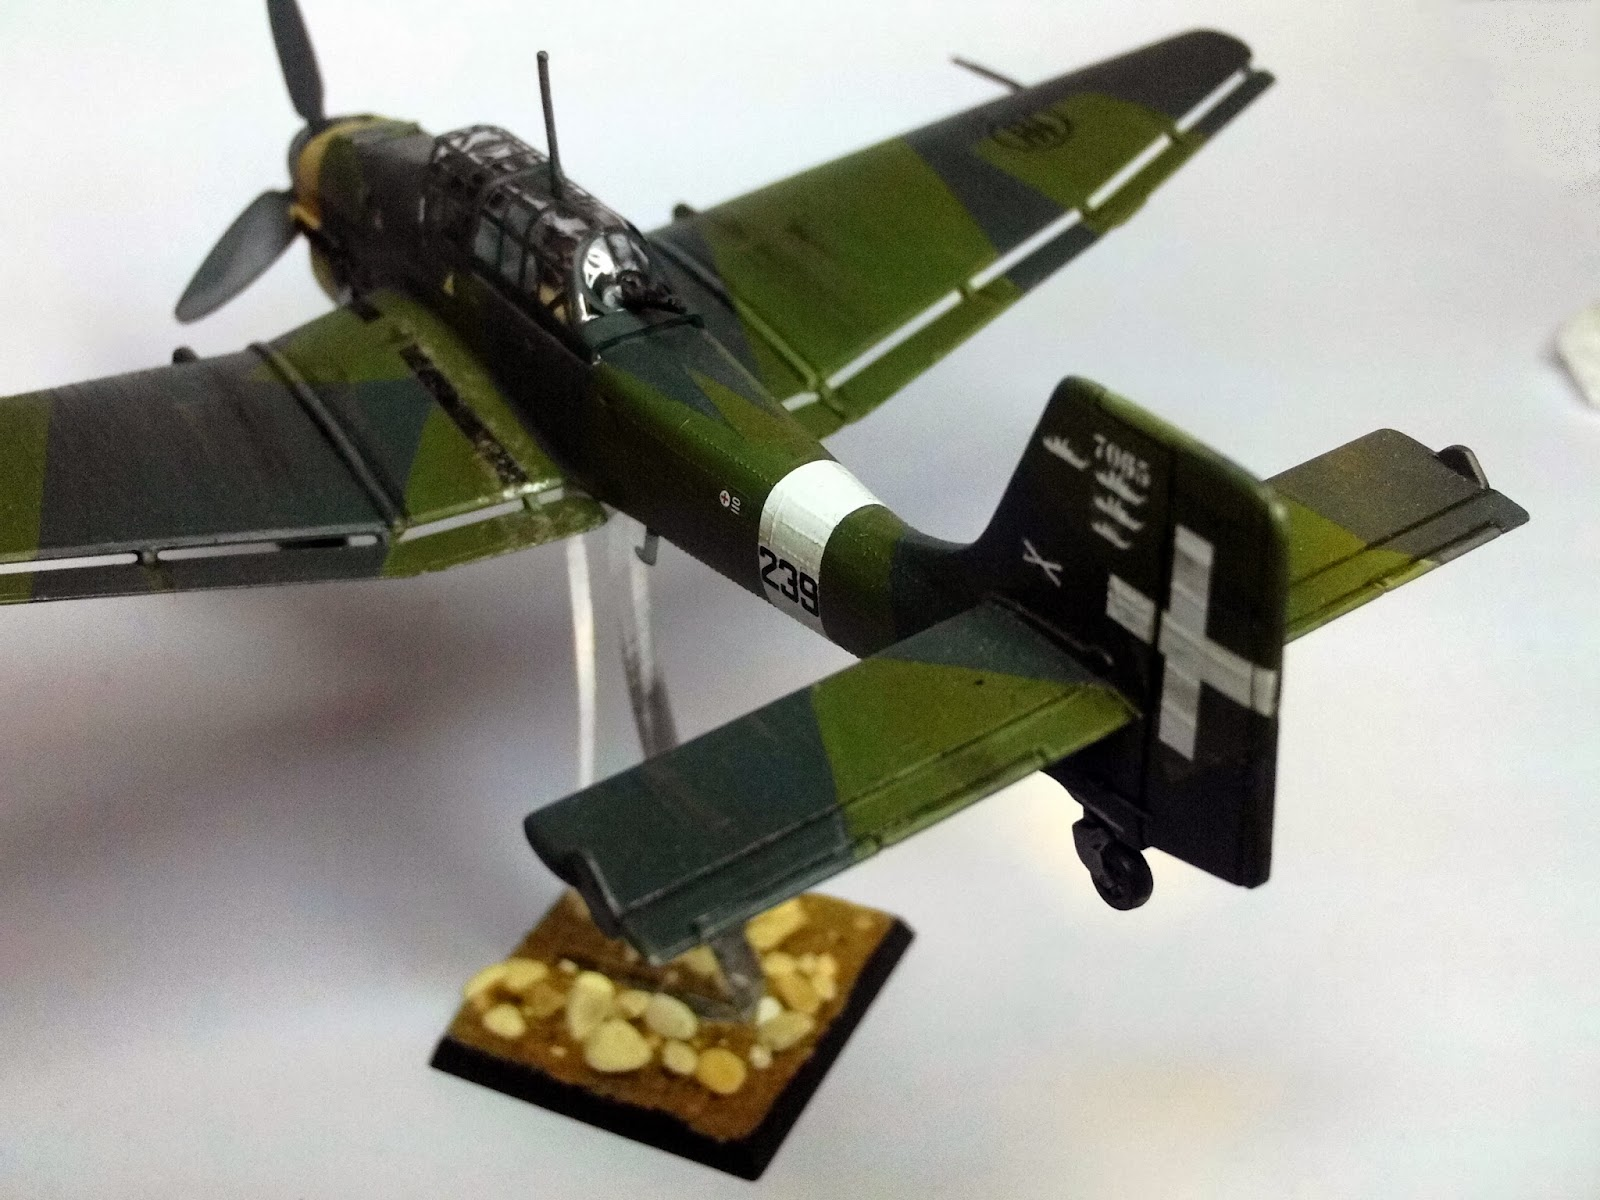 small resolution of powered by one 1 100hp junkers jumo 211 engine the ju87b 2 had a maximum speed of 390km h 242mph wing span 13 78m 45ft 3in length 10 99m 36ft 1in